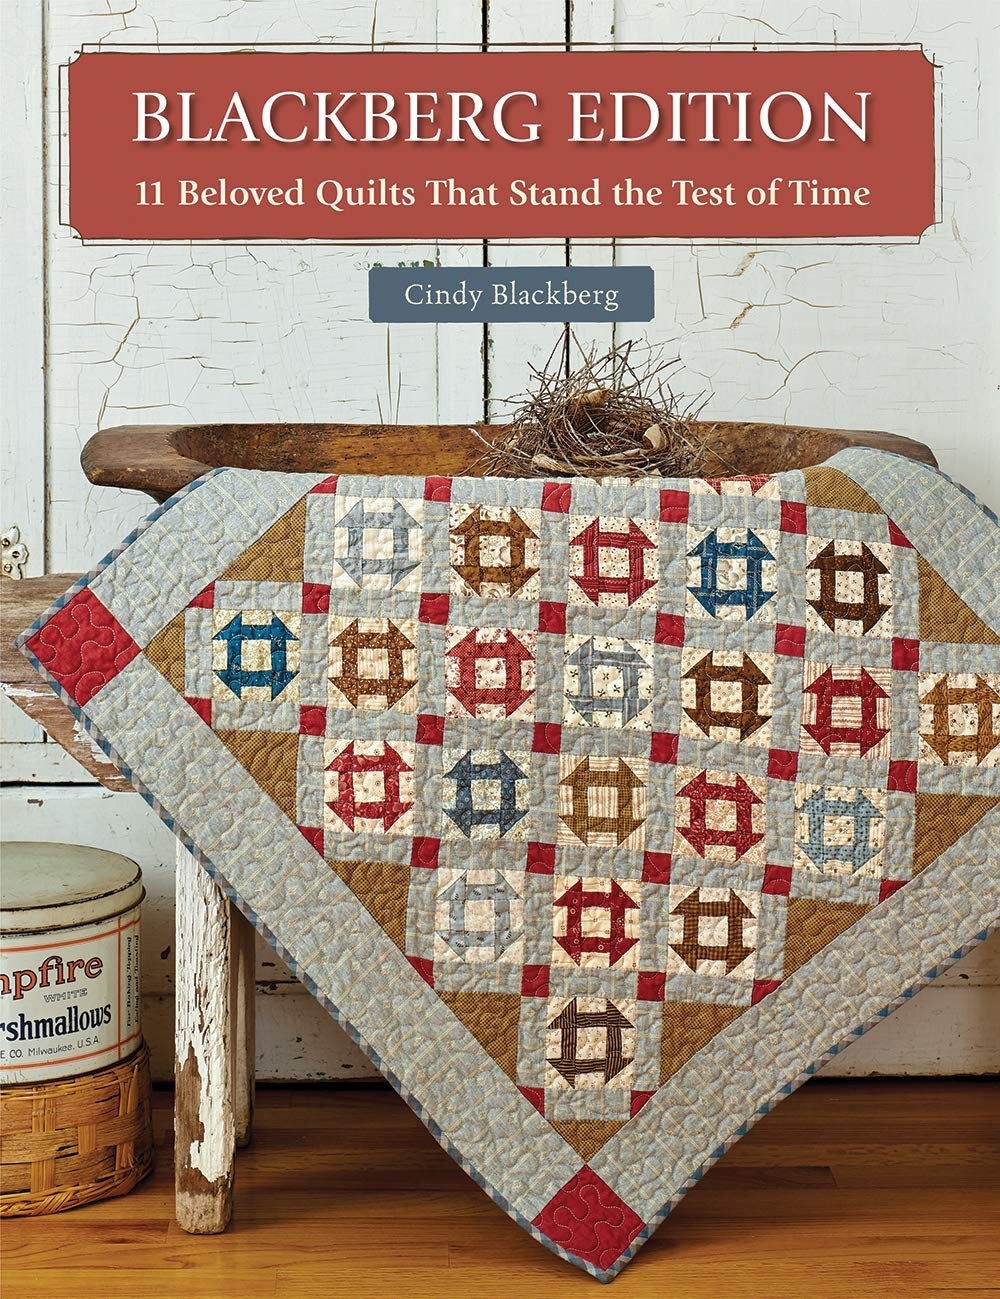 Blackberg Edition 11 Beloved Quilts That Stand the Test of Time Book